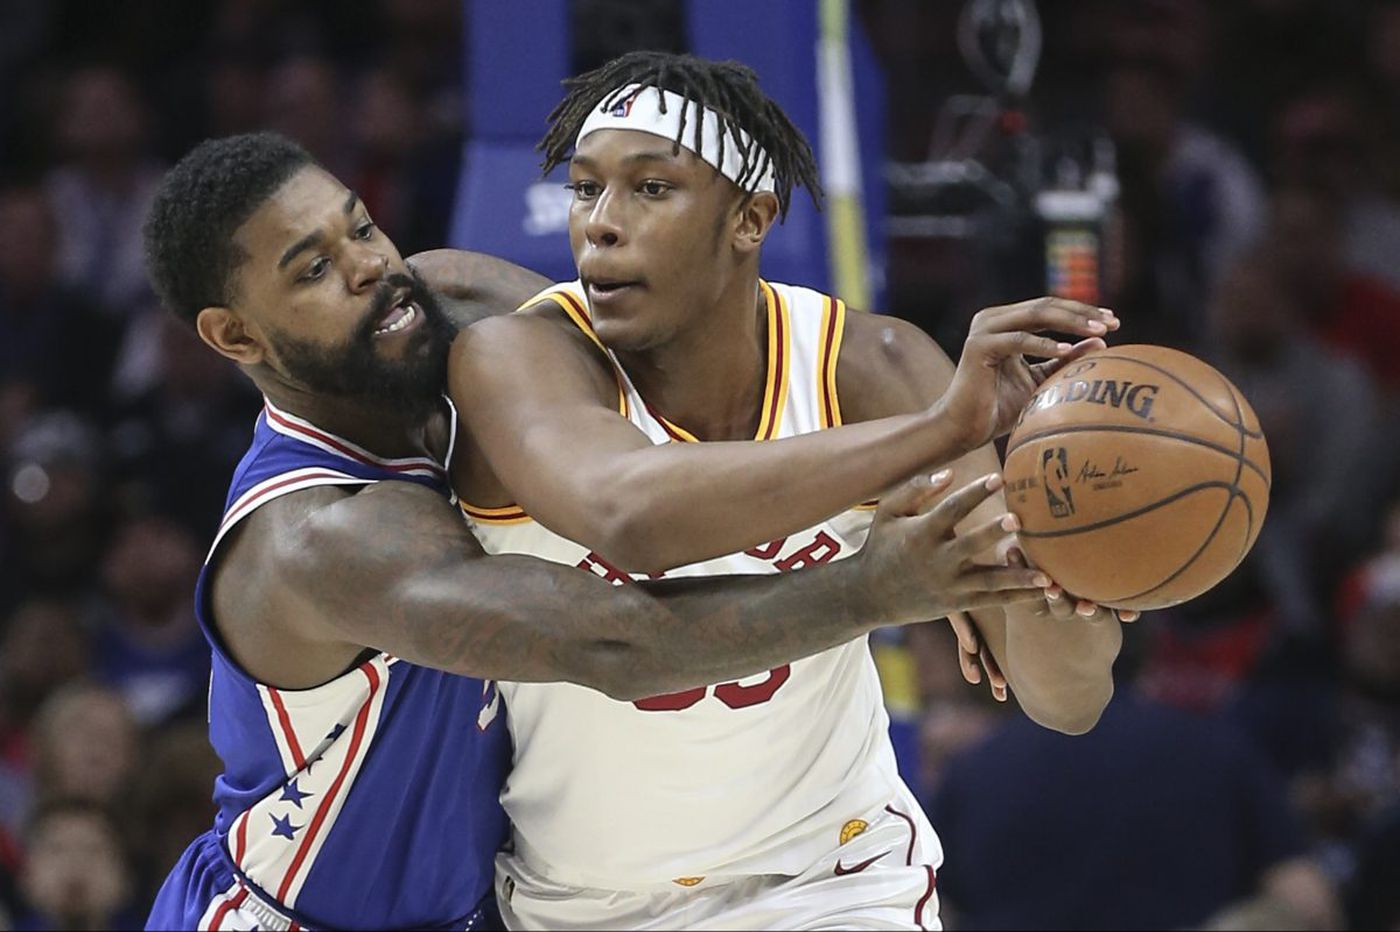 Sixers 98-Pacers 101: Myles Turner causes problems and Sixers are still struggling with turnovers and fouls